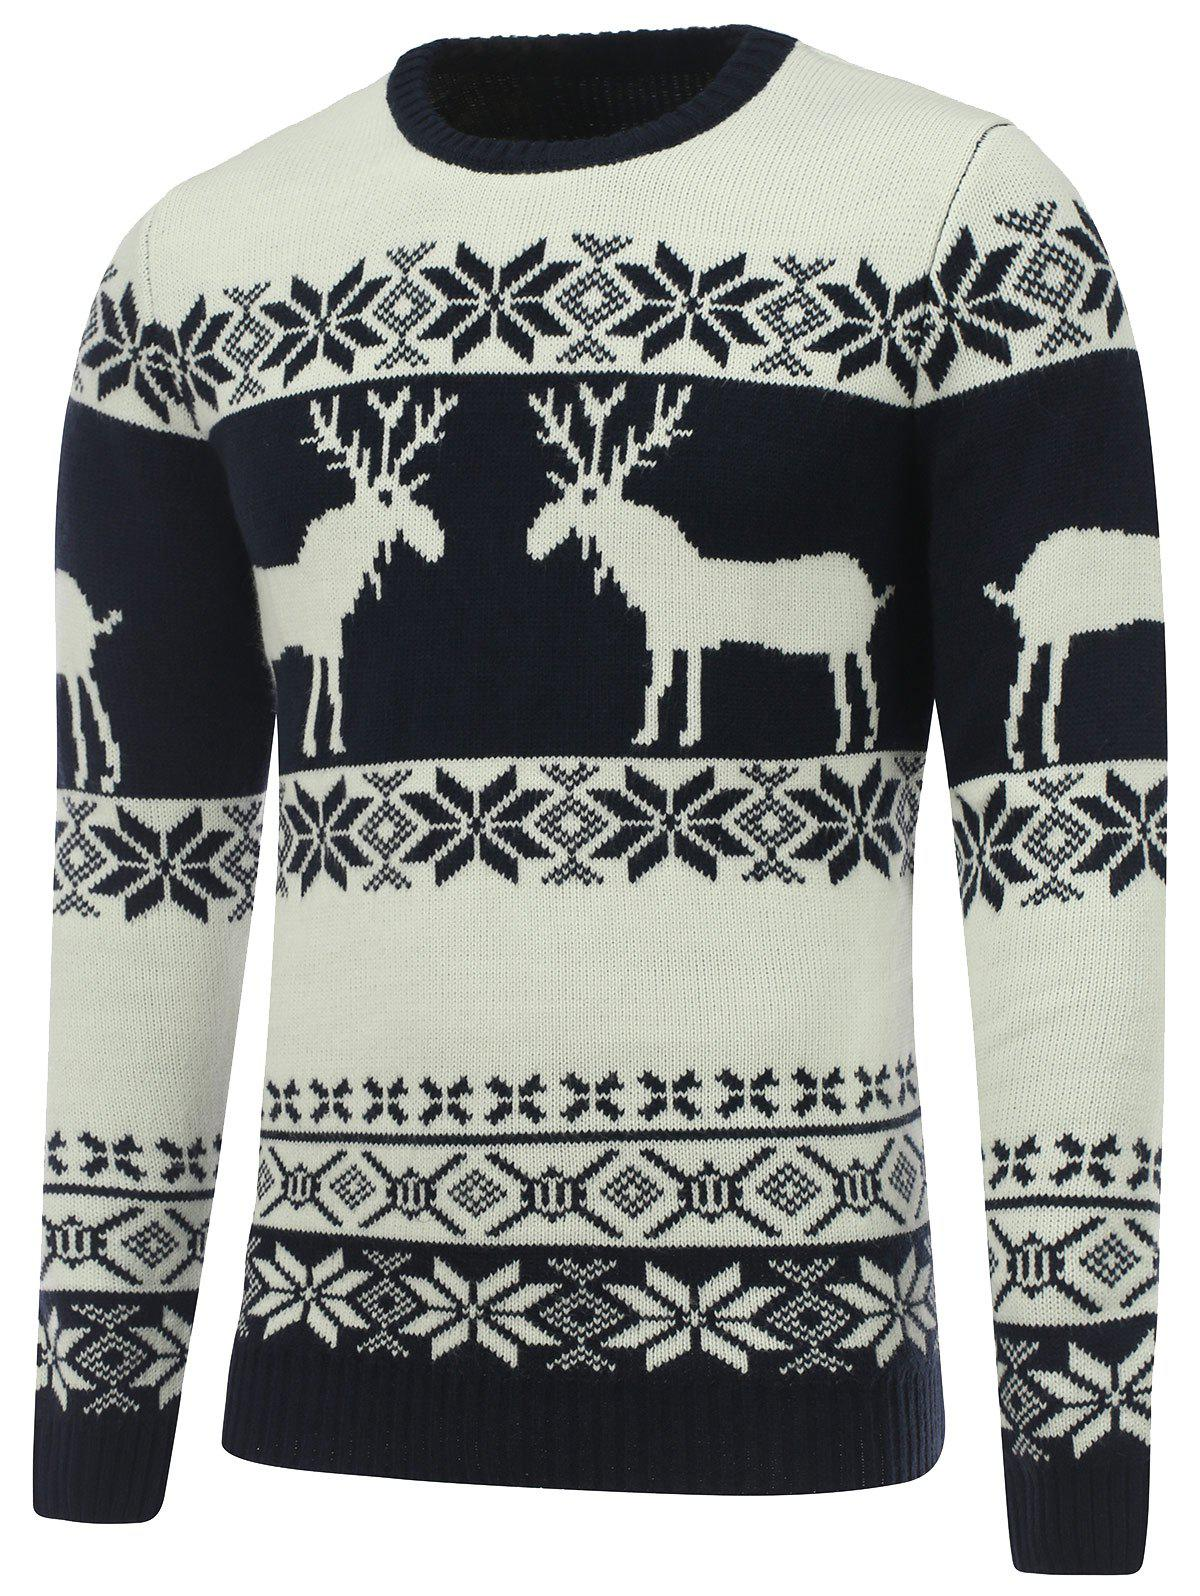 Crew Neck Reindeer Snowflake Christmas SweaterMEN<br><br>Size: XL; Color: WHITE; Type: Pullovers; Material: Polyester; Sleeve Length: Full; Collar: Crew Neck; Style: Fashion; Weight: 0.7580kg; Package Contents: 1 x Sweater;